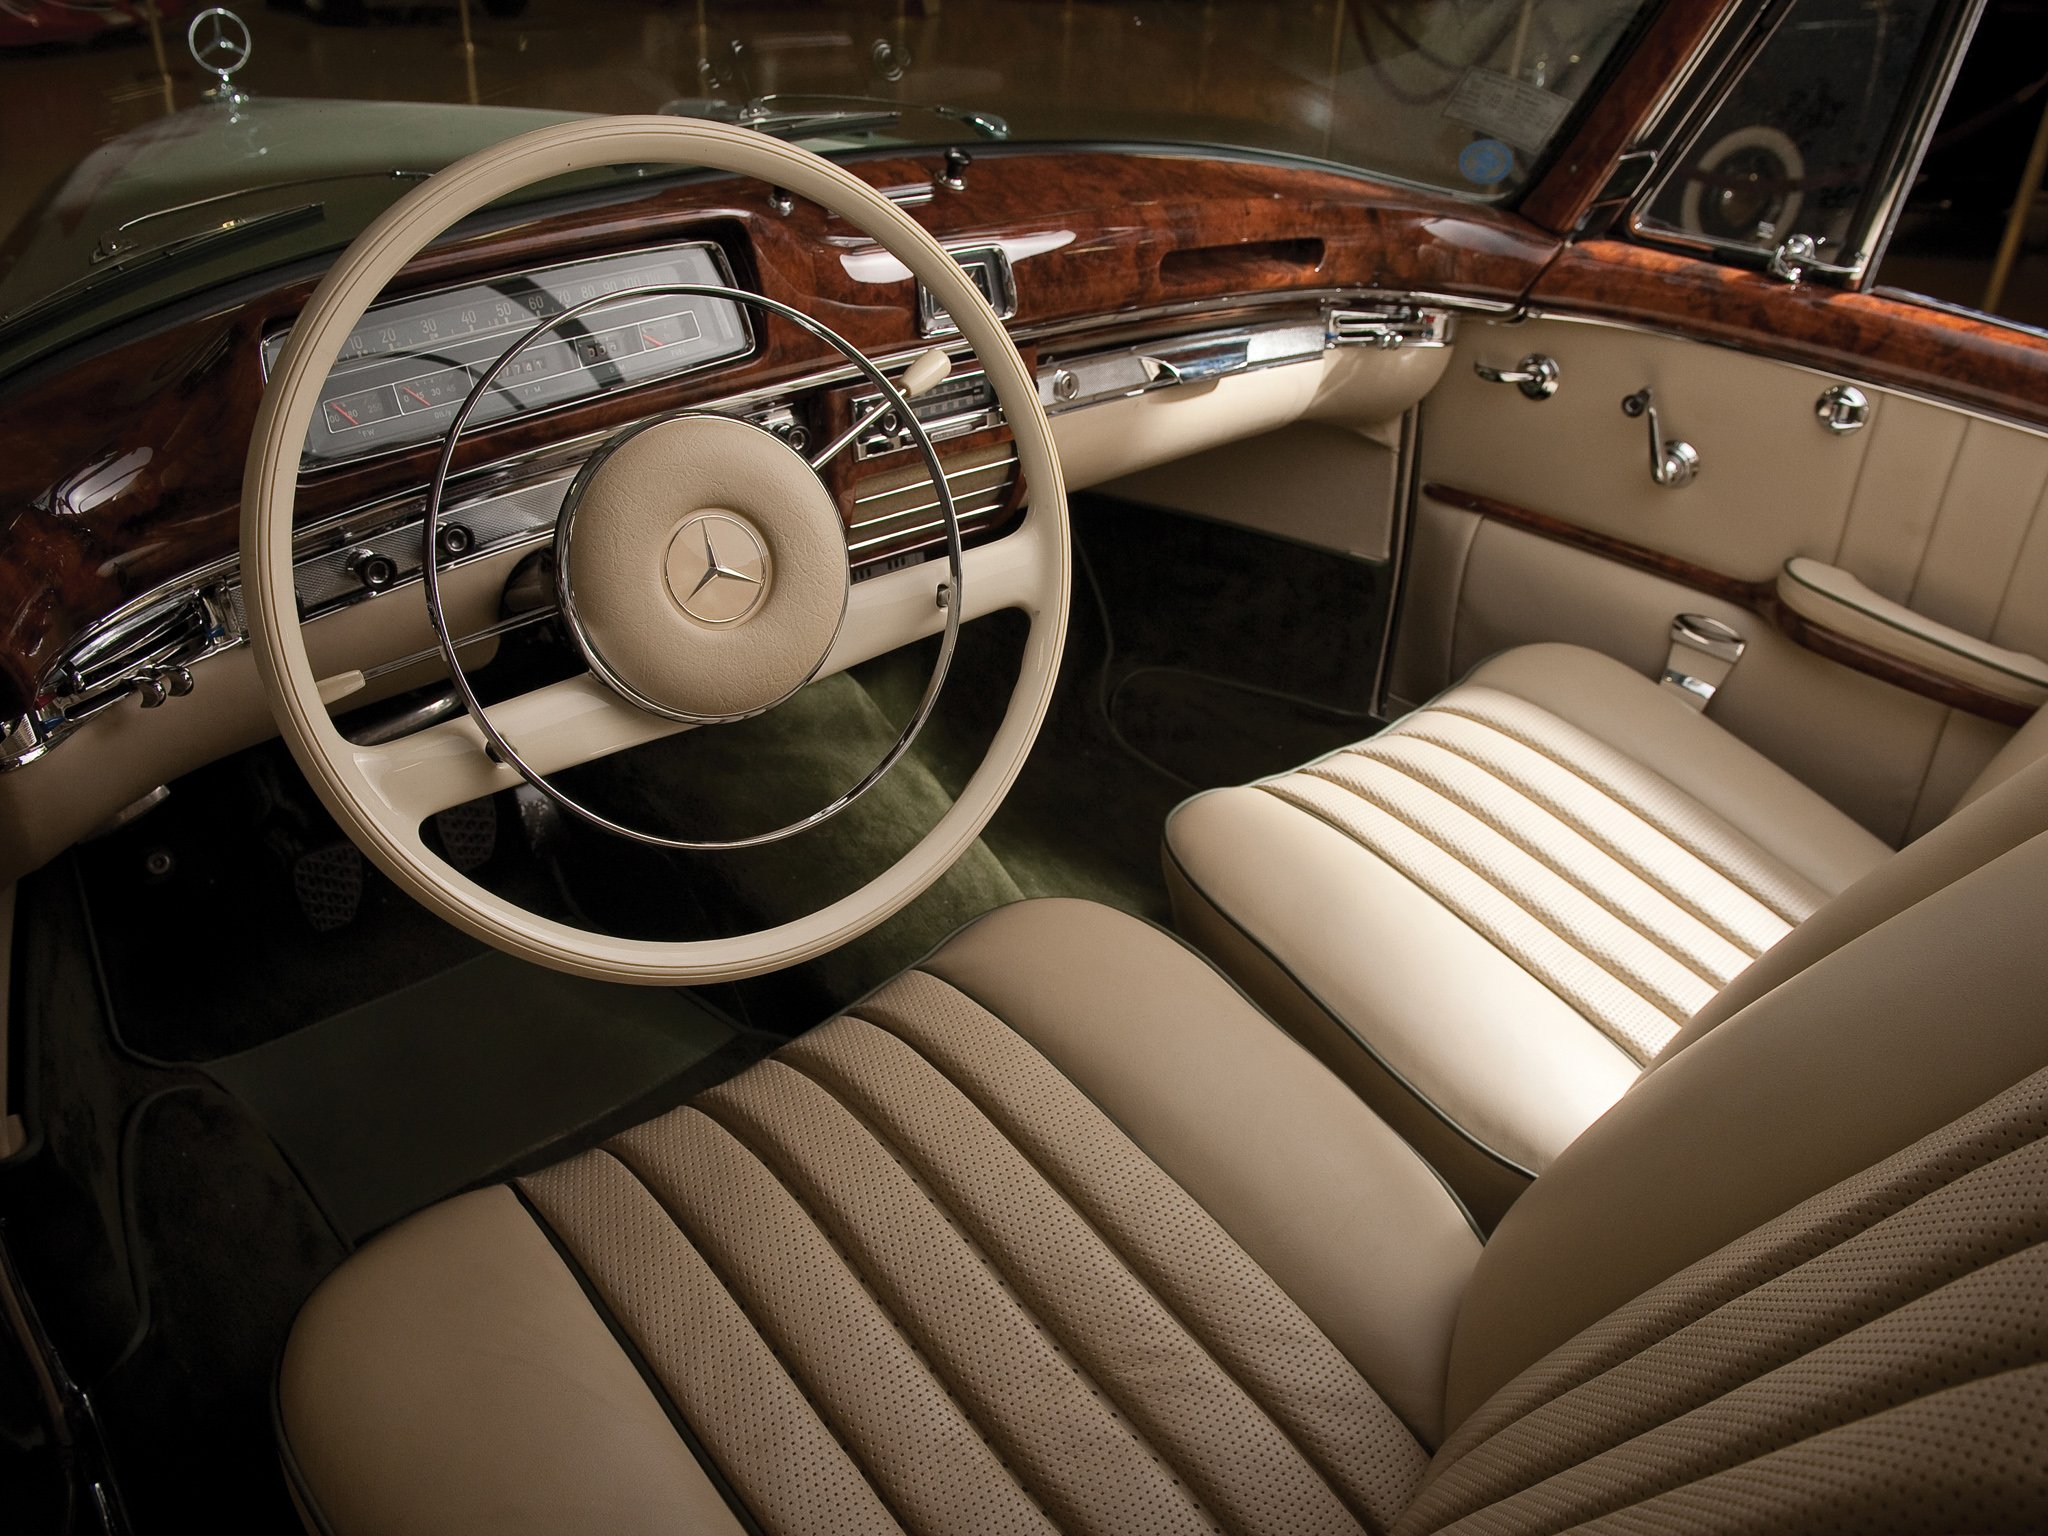 1958 mercedes 220 se cabriolet convertible classic cars wallpaper 2048x1536 680979 wallpaperup. Black Bedroom Furniture Sets. Home Design Ideas